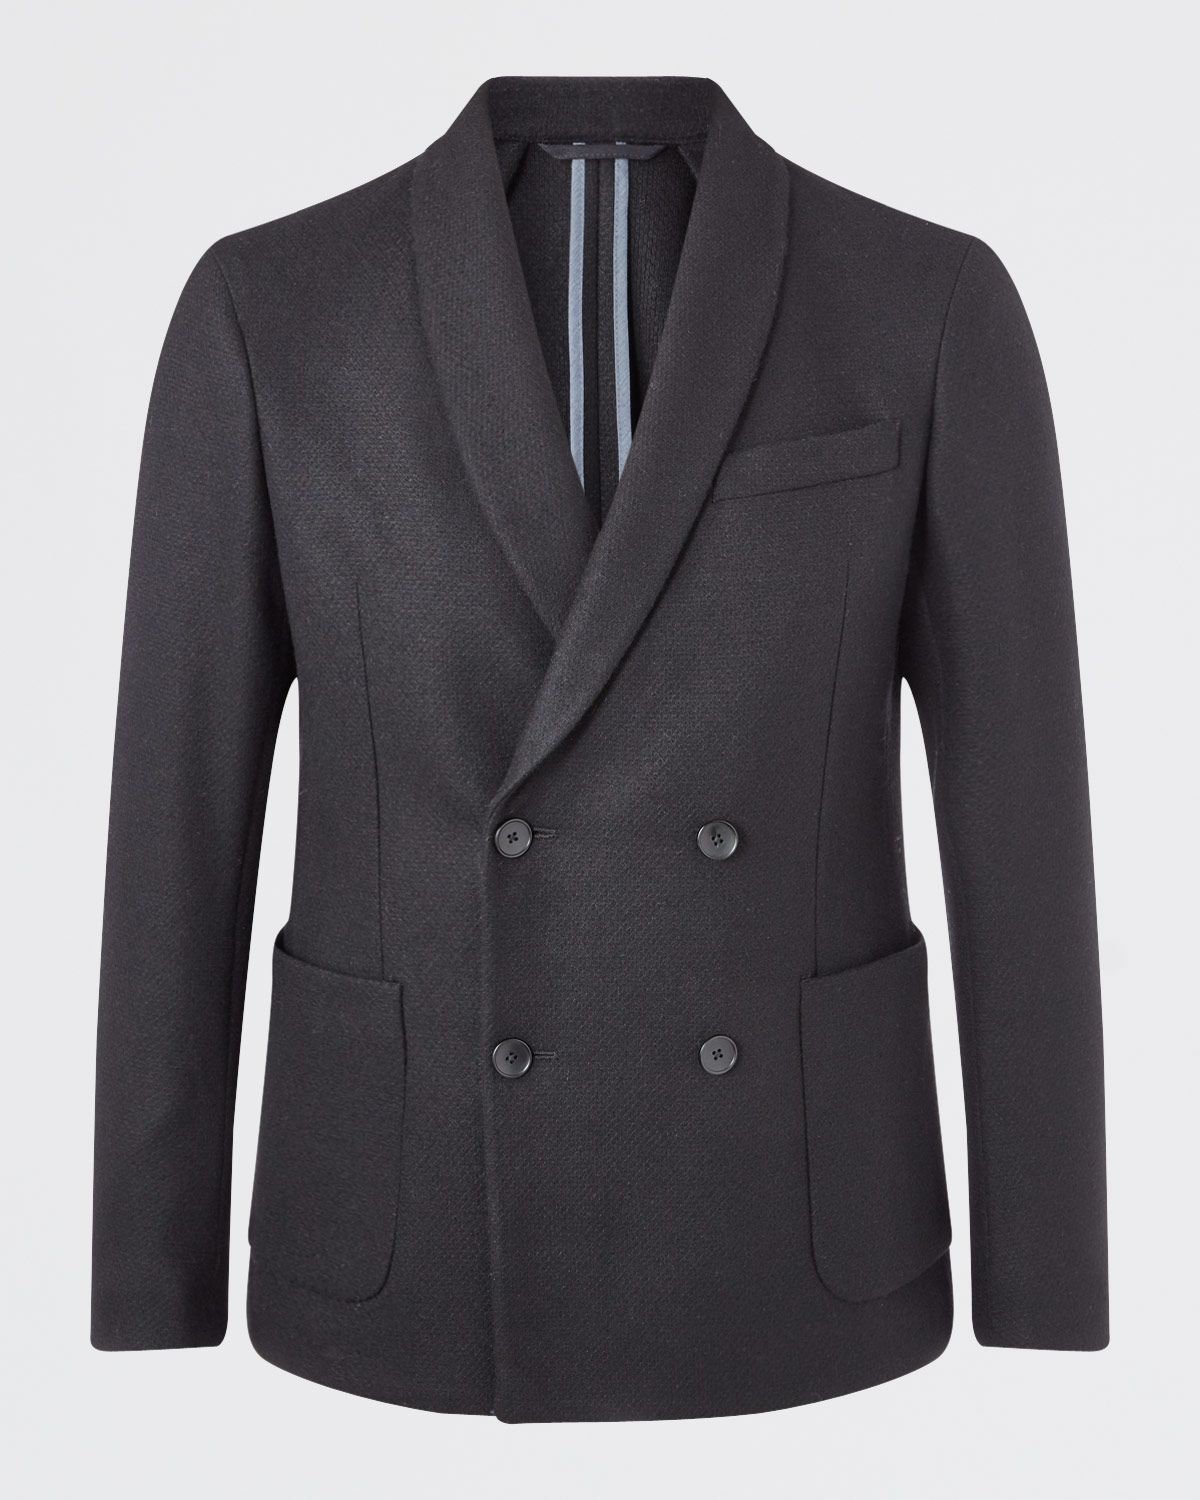 Pique Wool Double Breasted Shawl Blazer